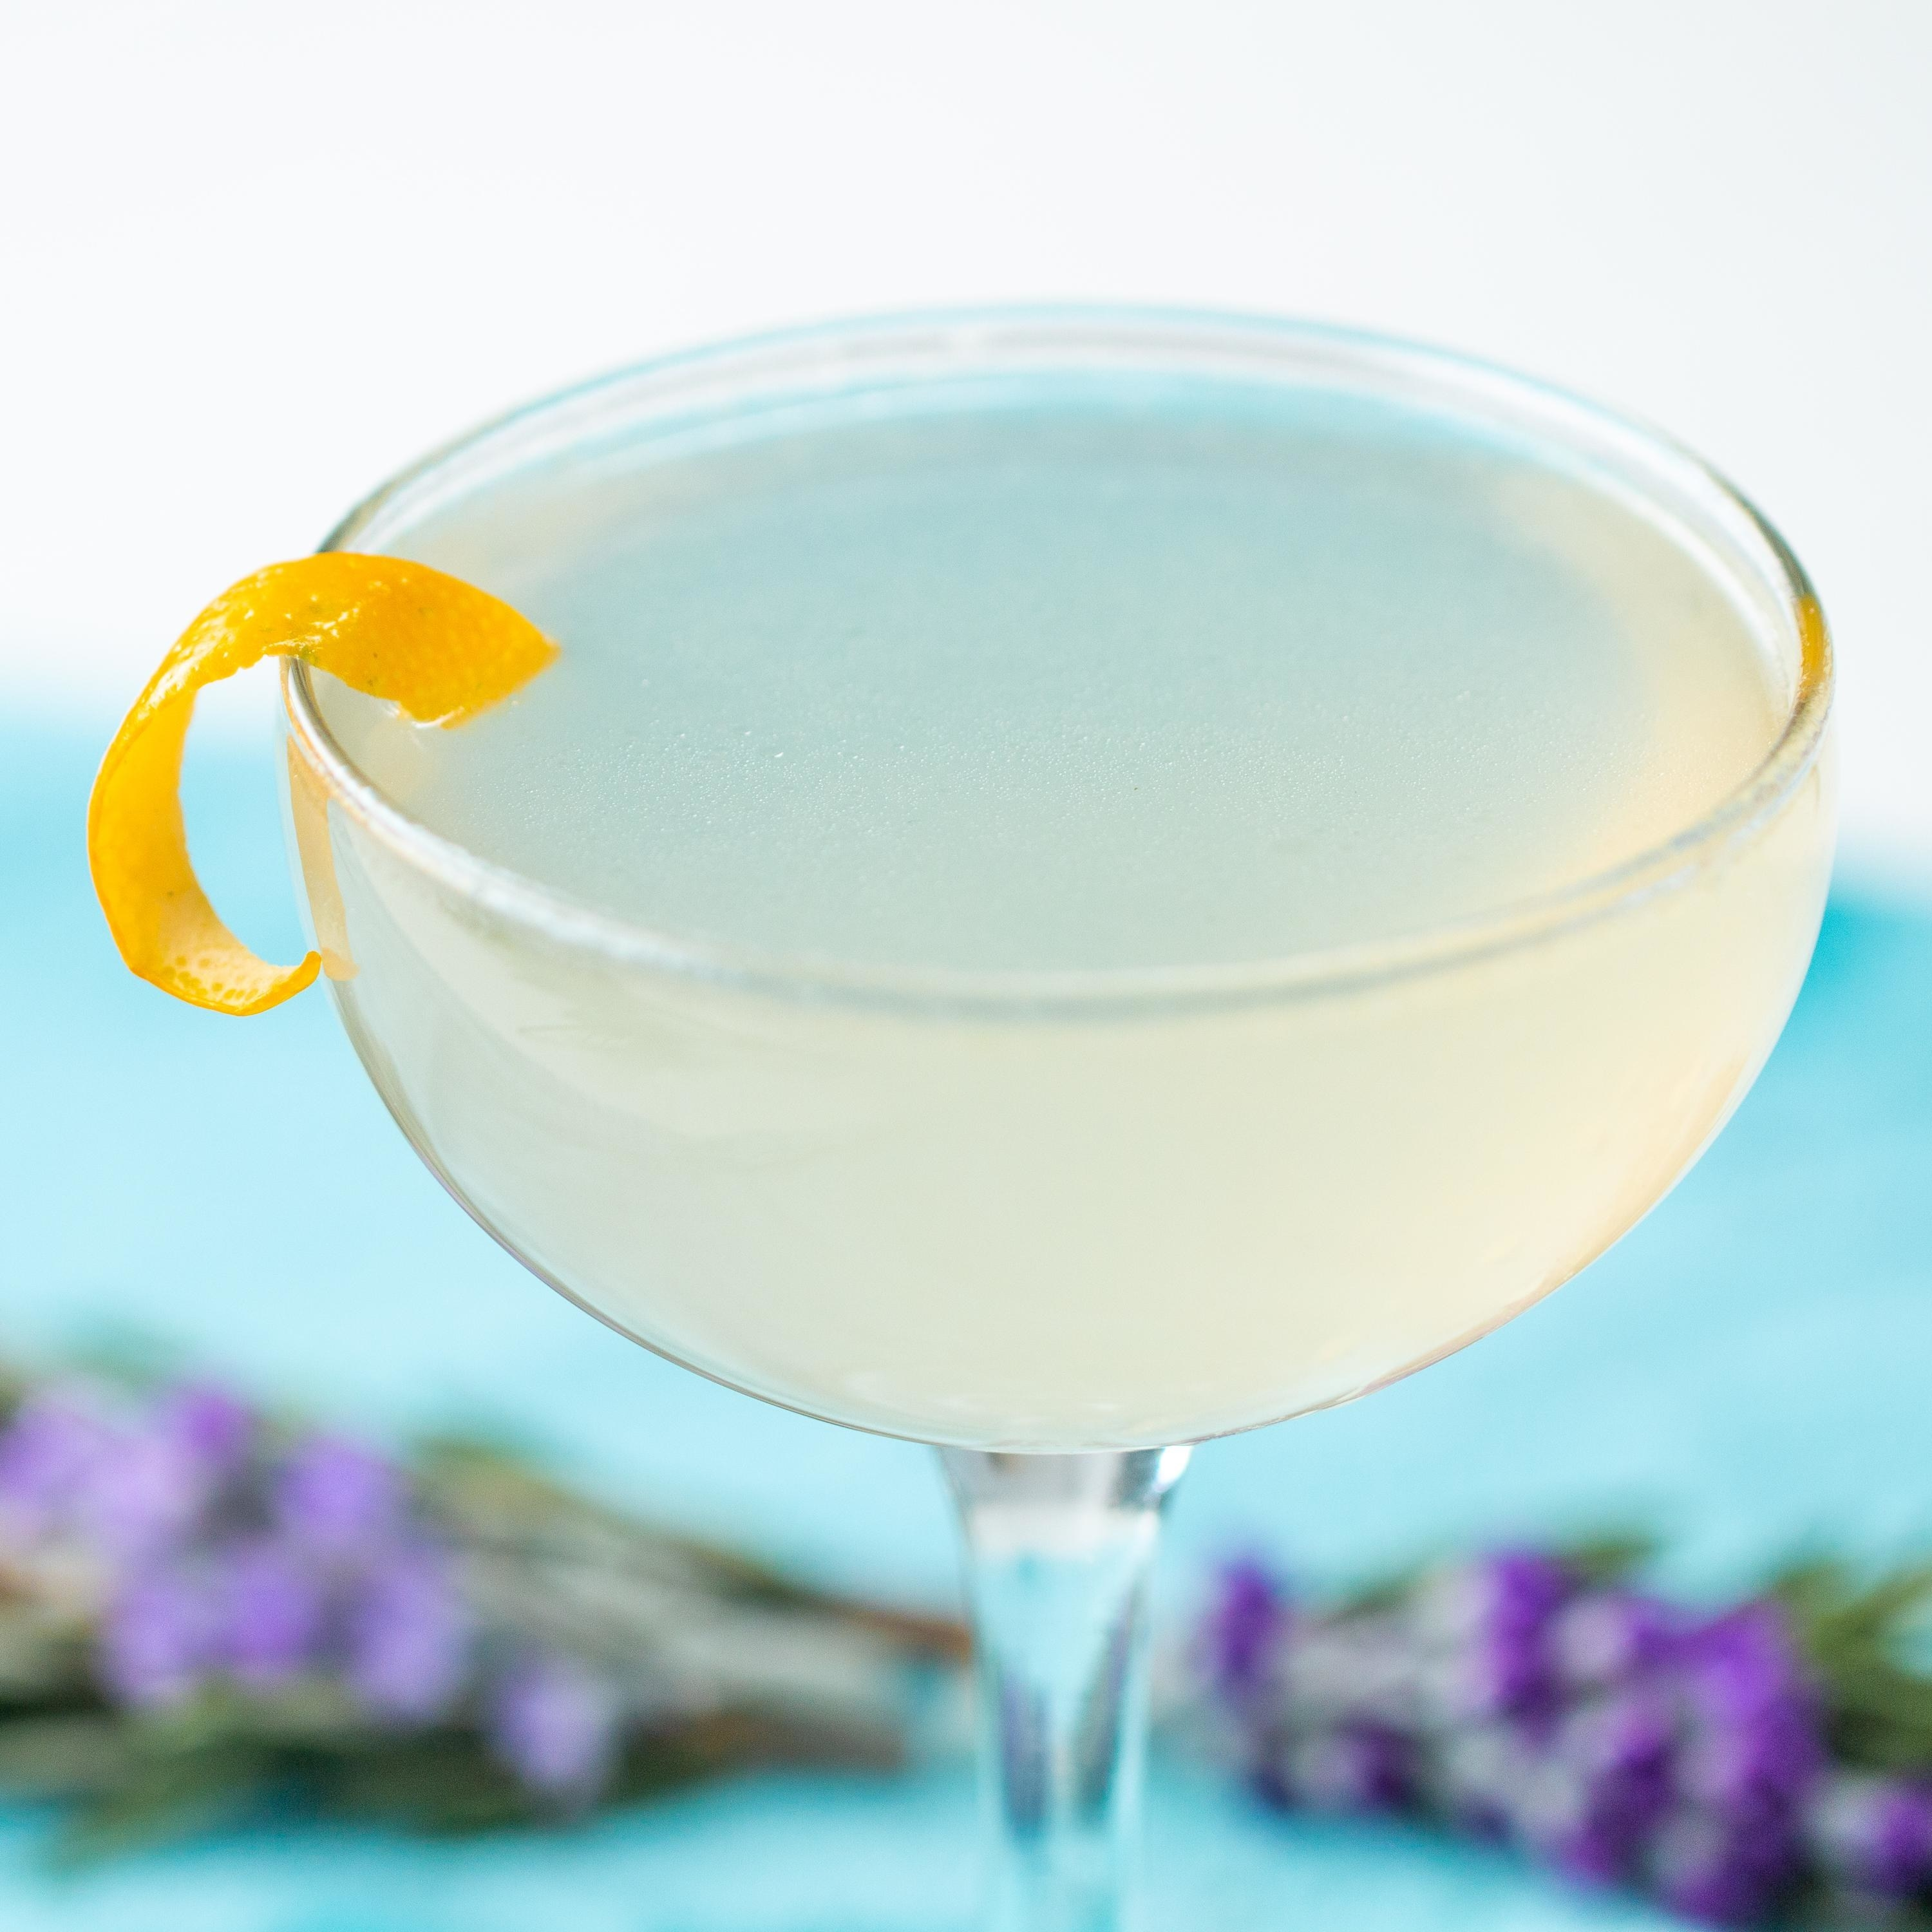 Glass filled with an opaque liquid and garnished with a twist of lemon peel.